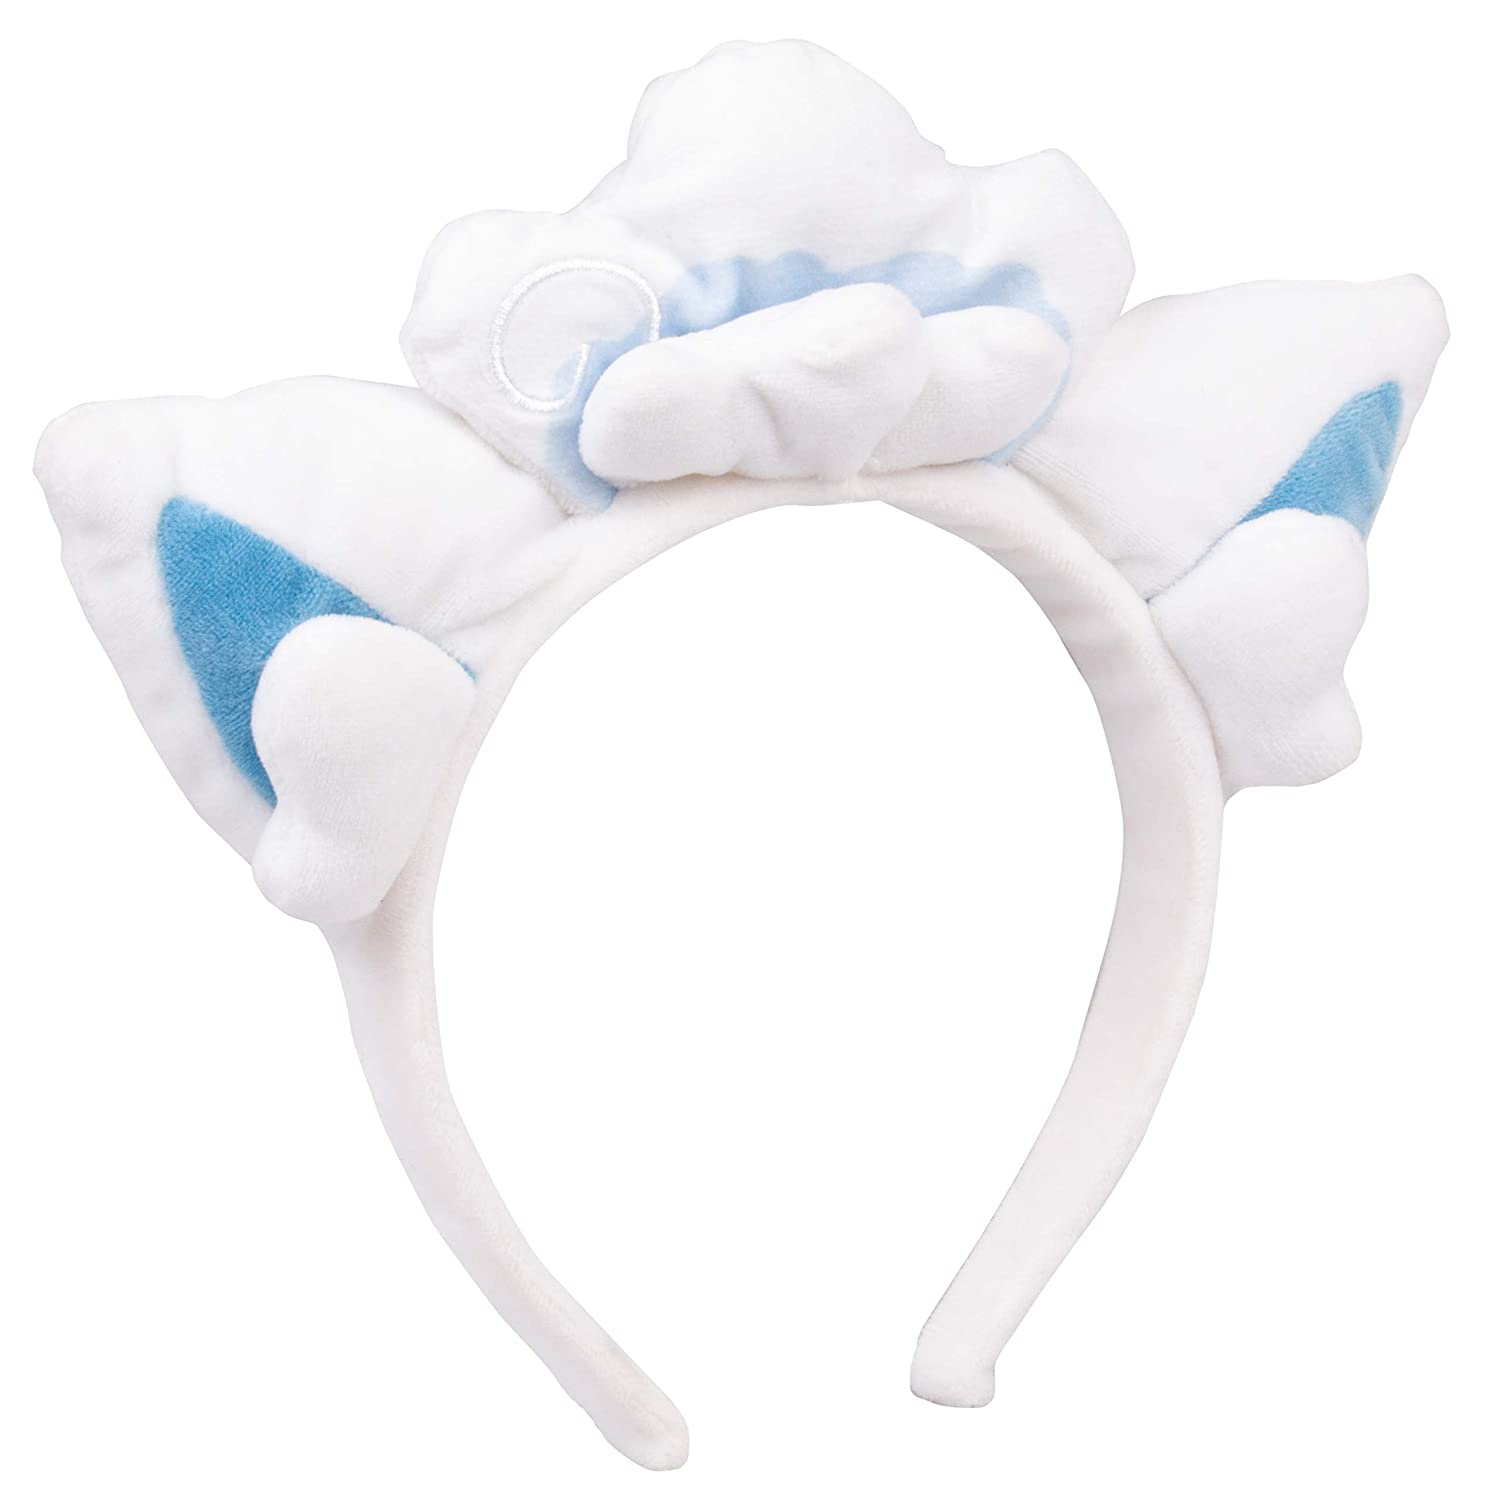 Pokémon Alolan Vulpix Plush Headband Alolan Vulpix Ears for Dress Up Halloween and More One Size Fits All